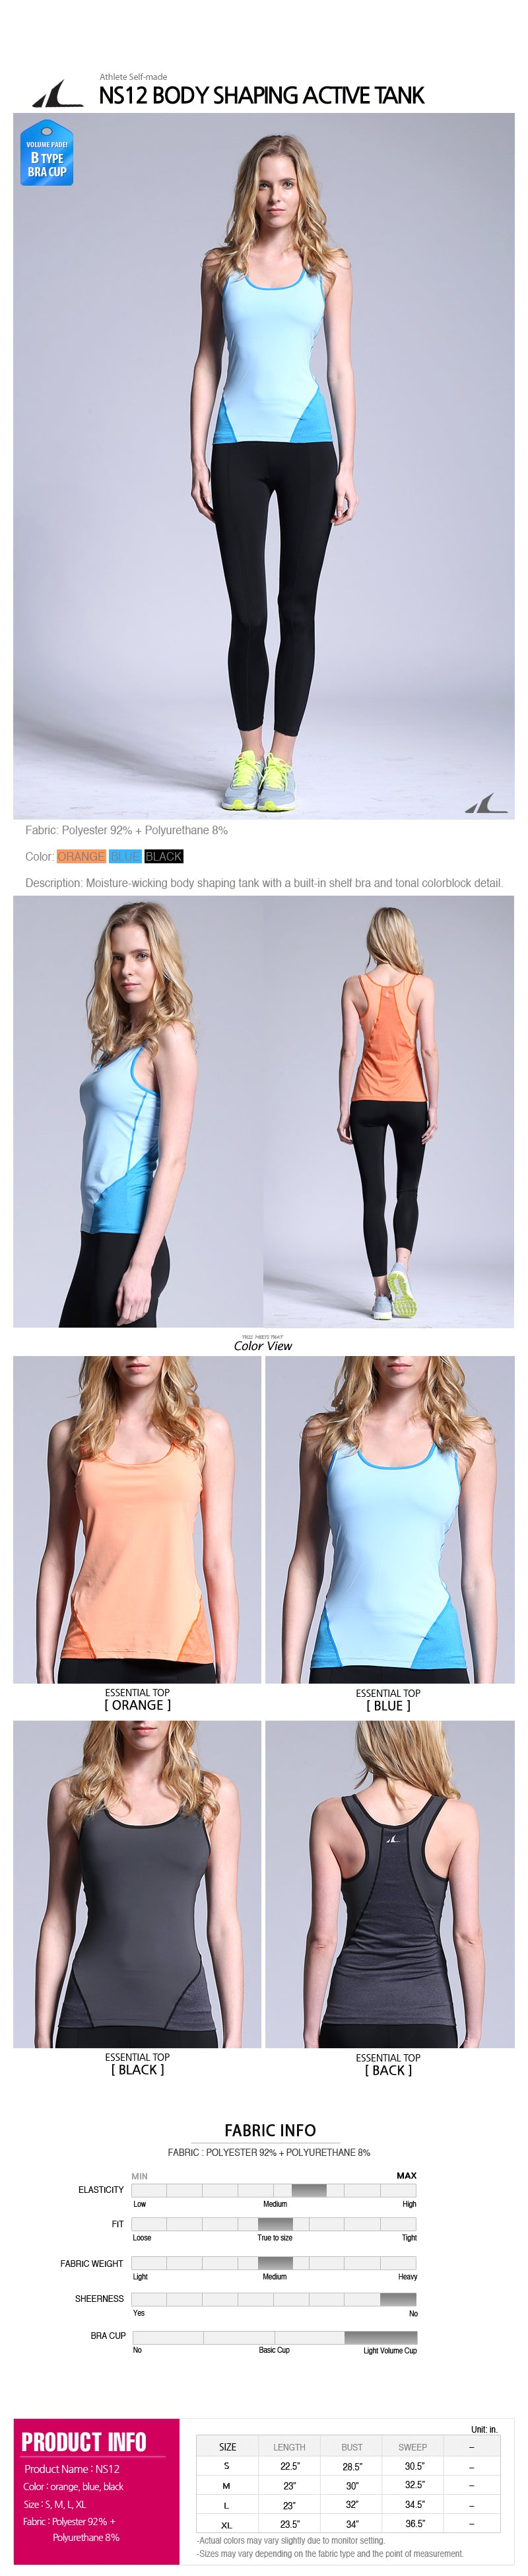 ATHLETE Women's Compression Active Tank, Style NS12